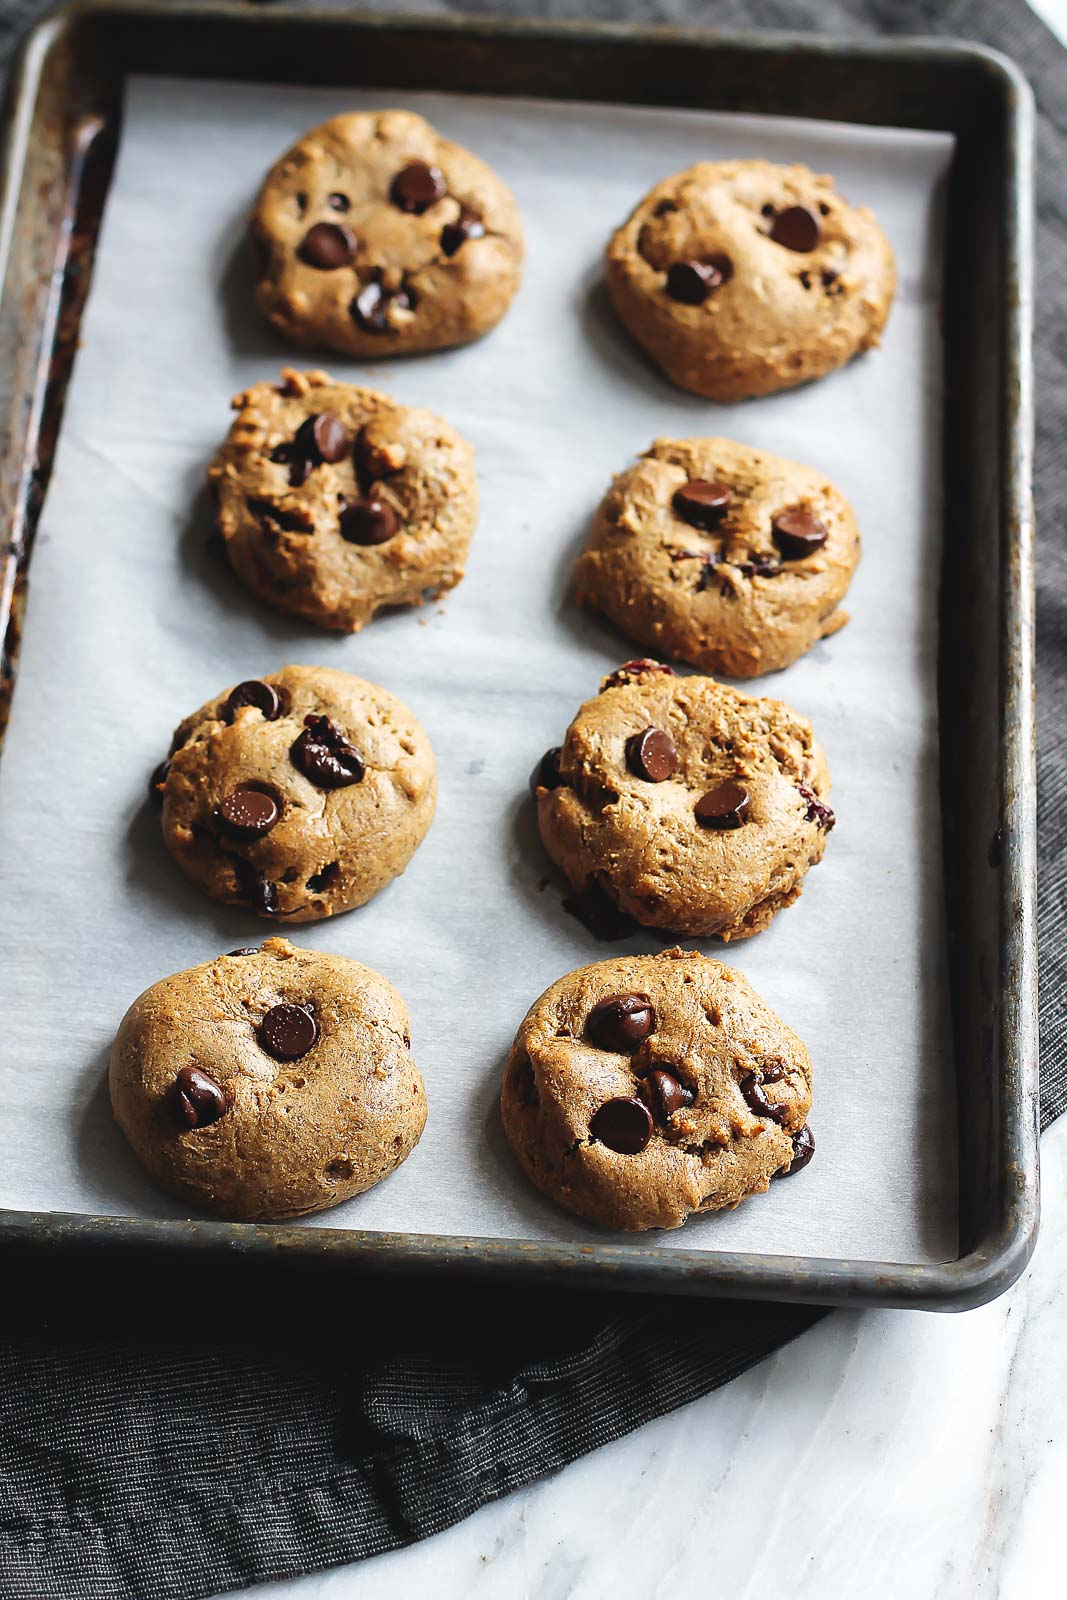 chocolate chip protein cookies on a baking tray